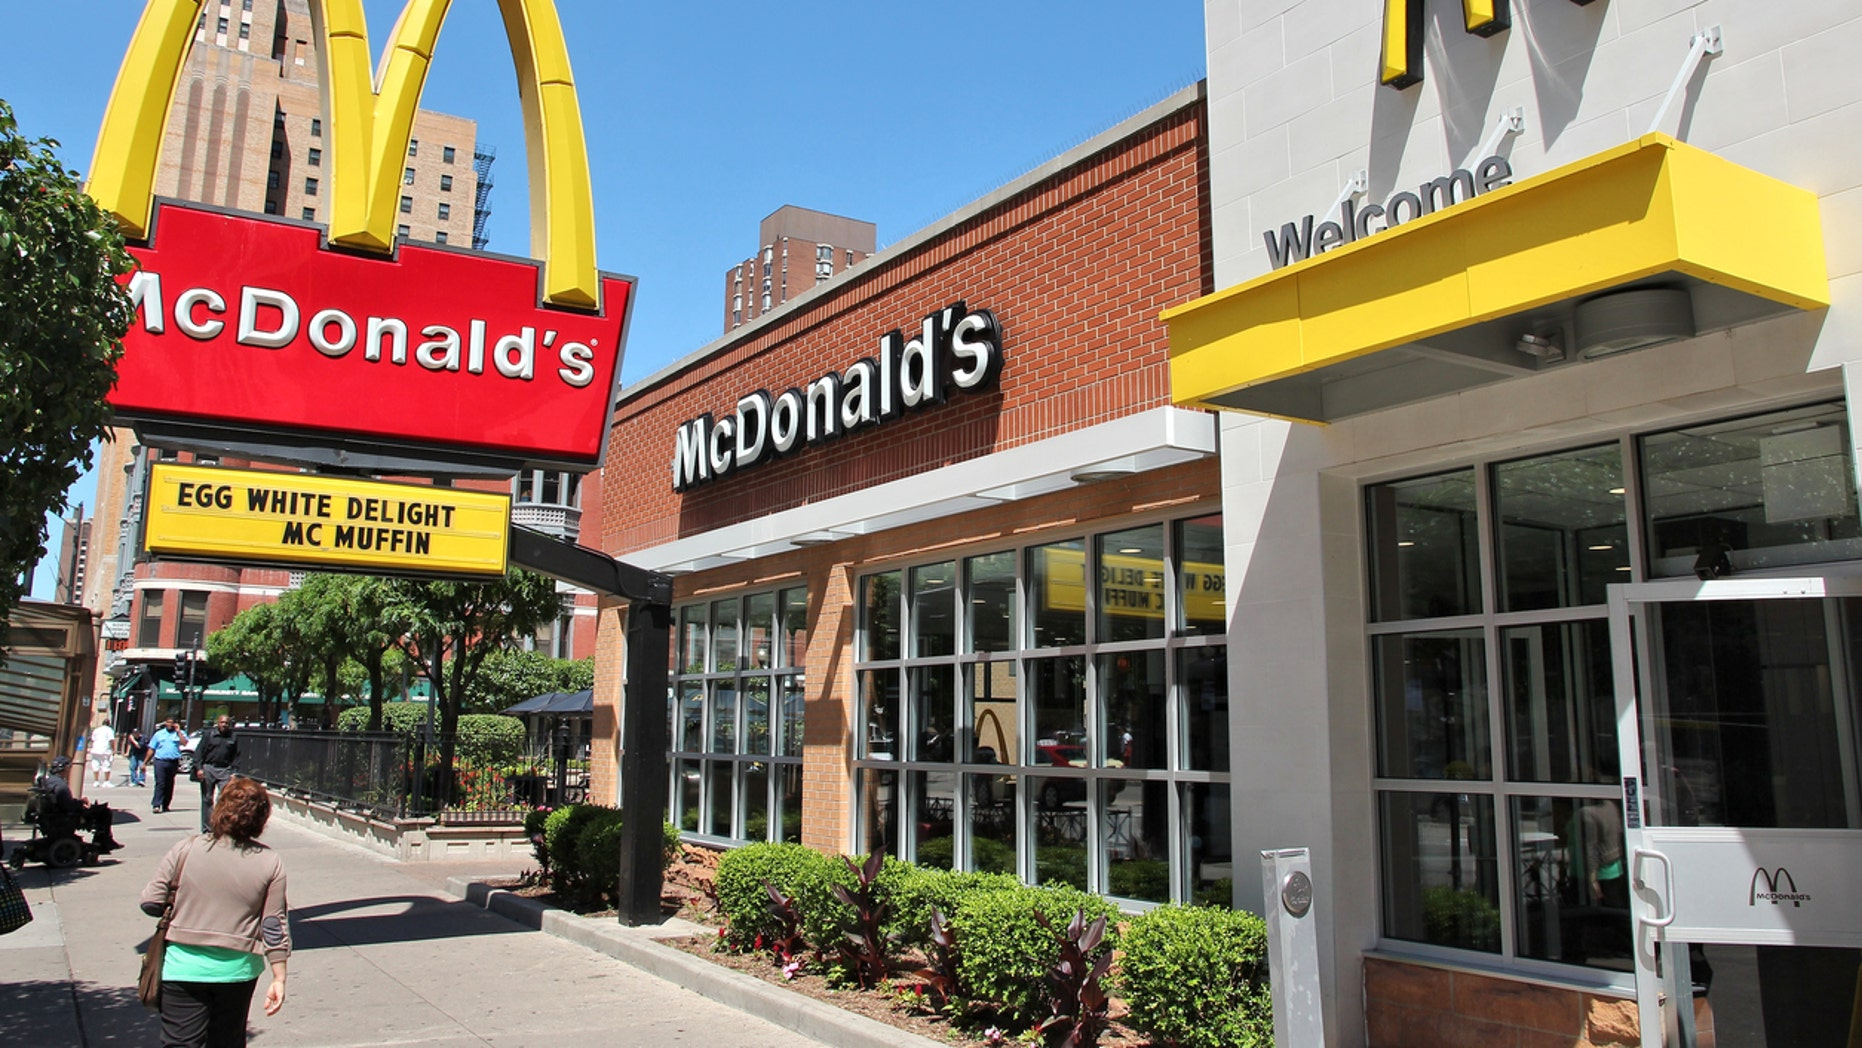 Officials said 20 people who ate salads at McDonald's restaurants in Illinois were sickened, while an additional 15 cases were reported in Iowa.